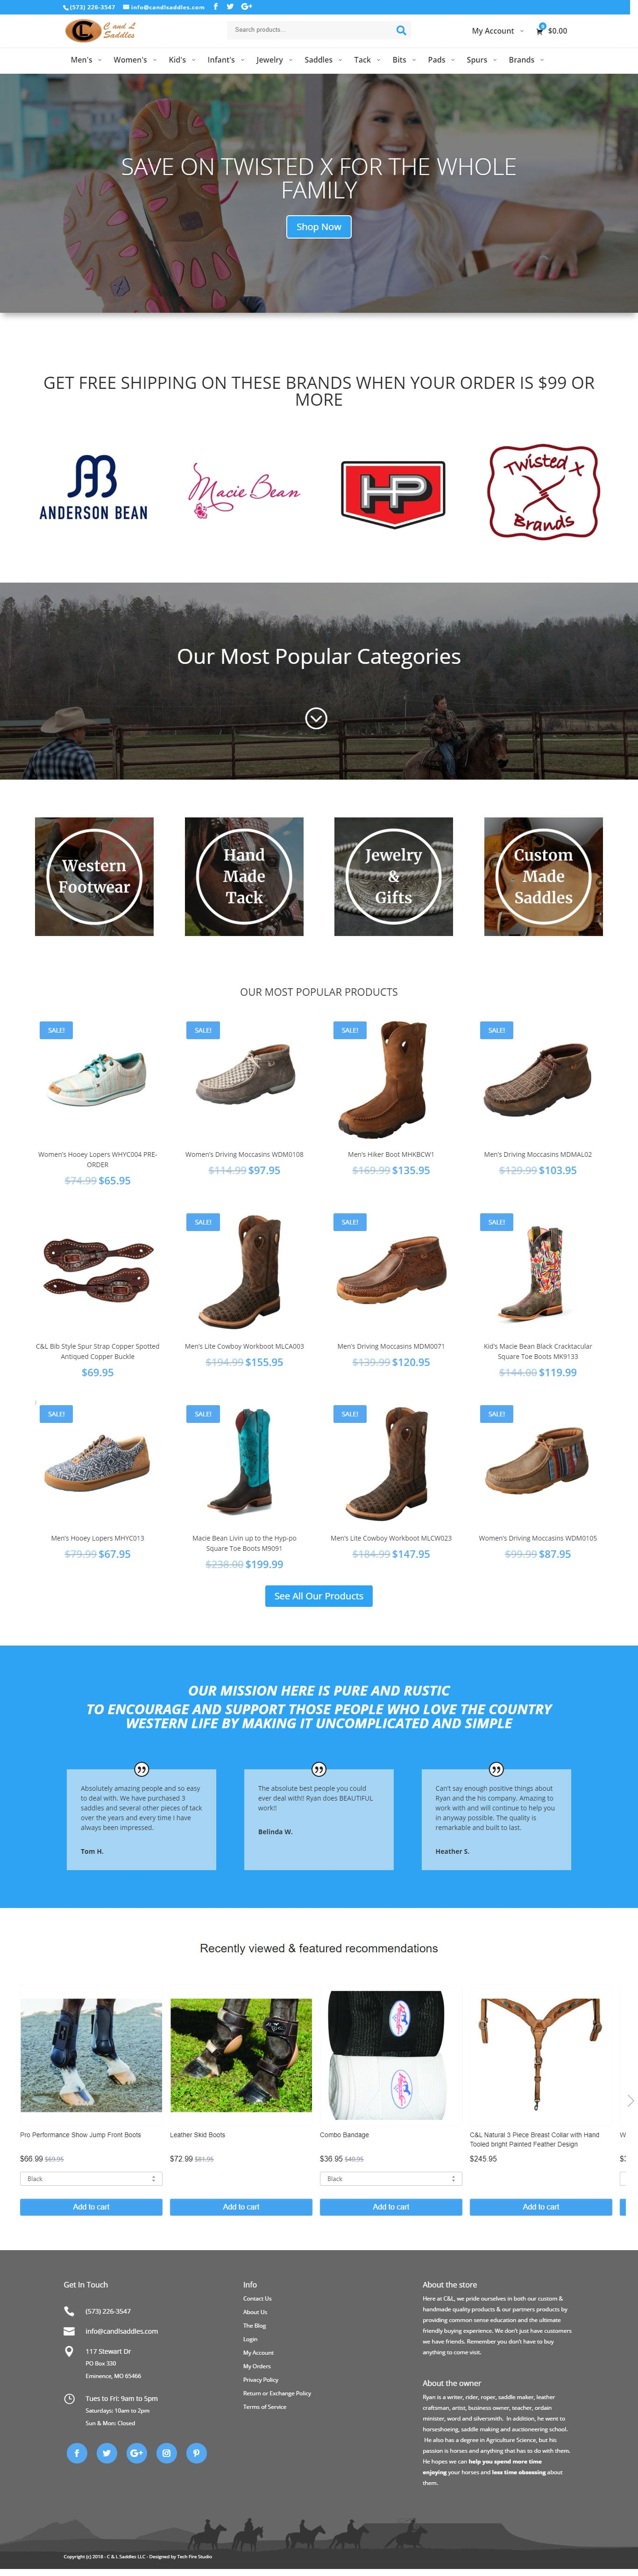 C&L Saddles – Website, E-Commerce store, Integrated Inventory Control System and Point of Sale for western sporting goods store in southern Missouri.